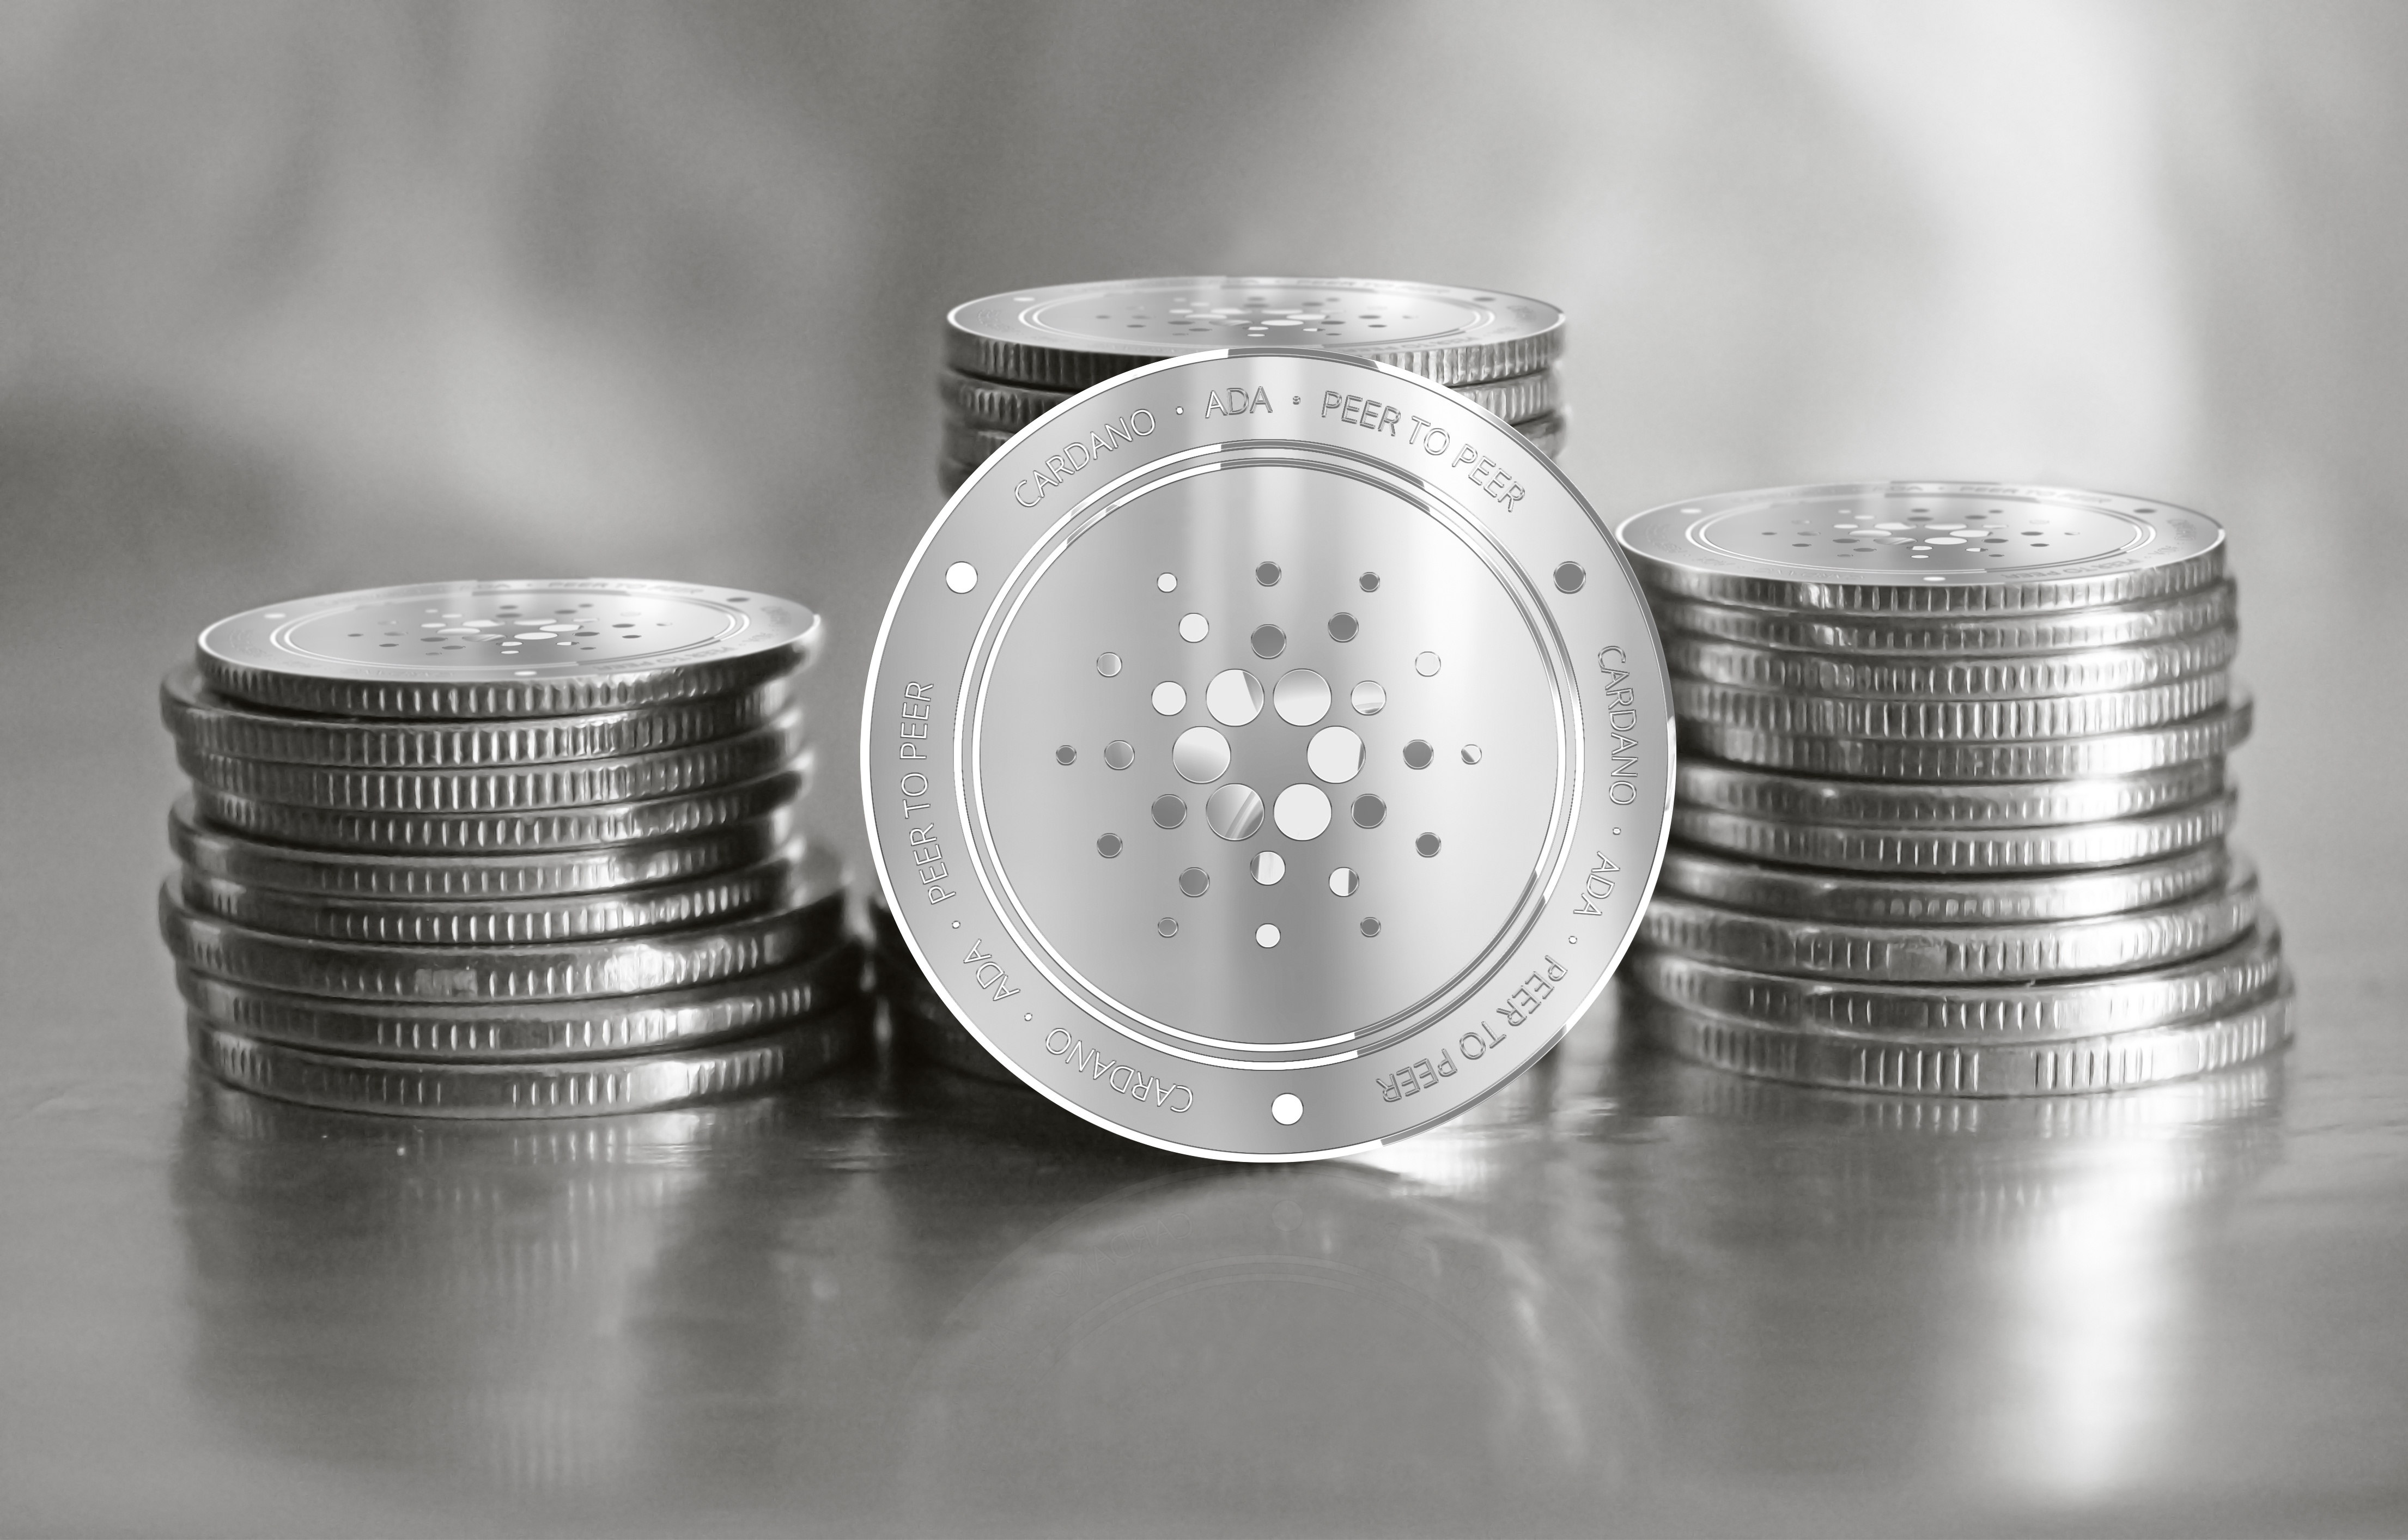 Cardano (ADA) Soars 17 Percent Ahead of Smart Contract Launch as Charles Hoskinson Takes Aim at Critics